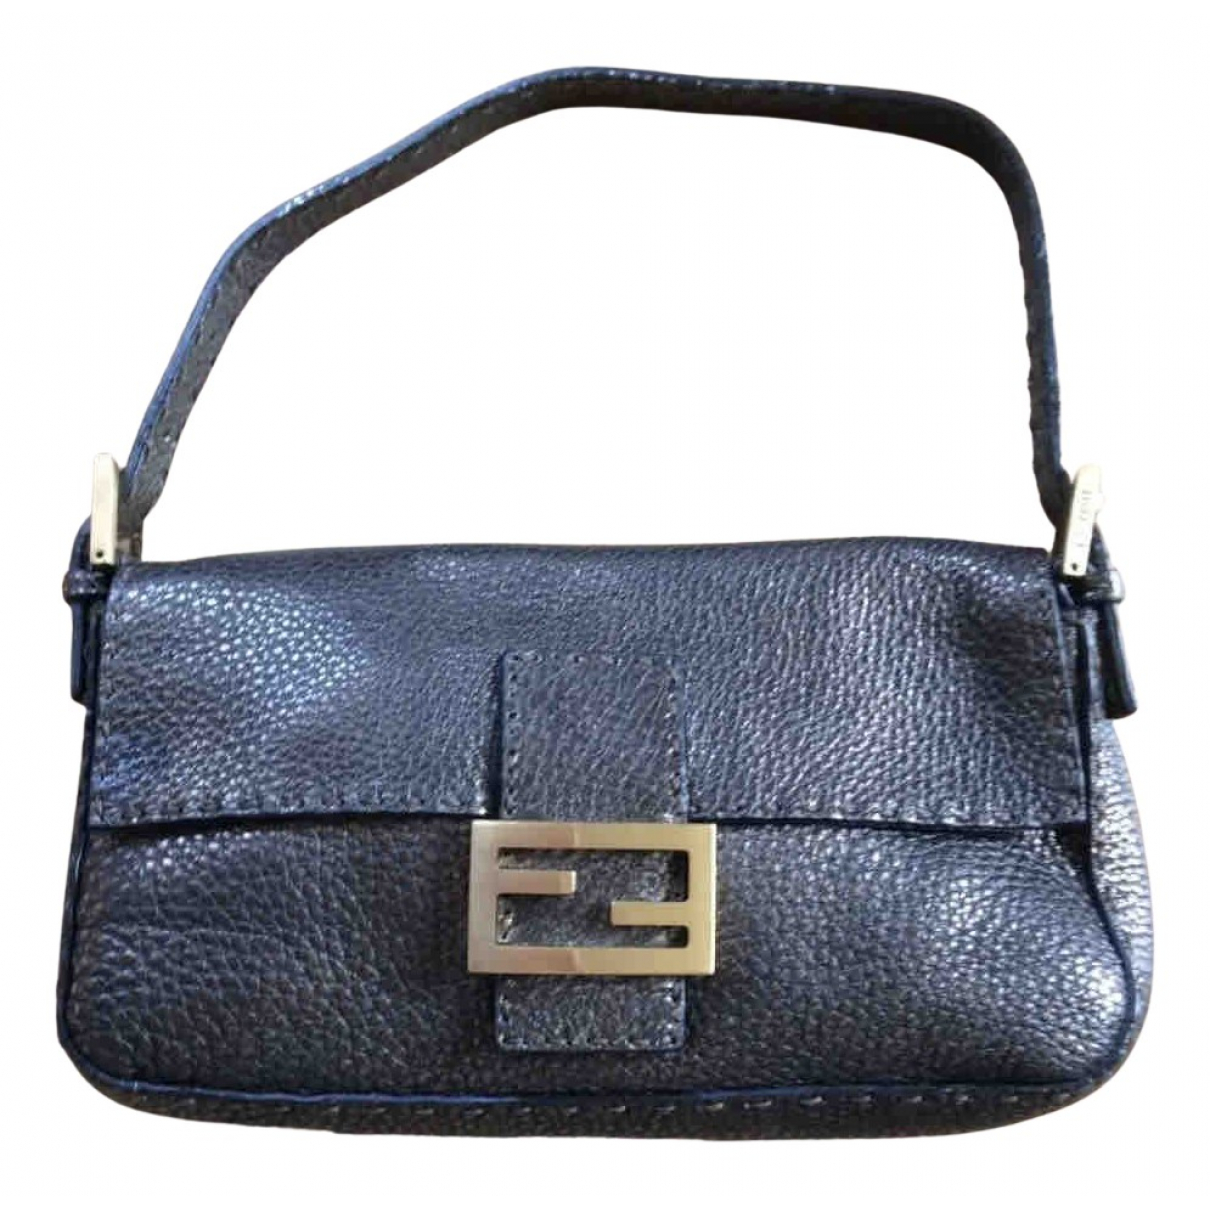 Fendi Baguette Black Leather handbag for Women N